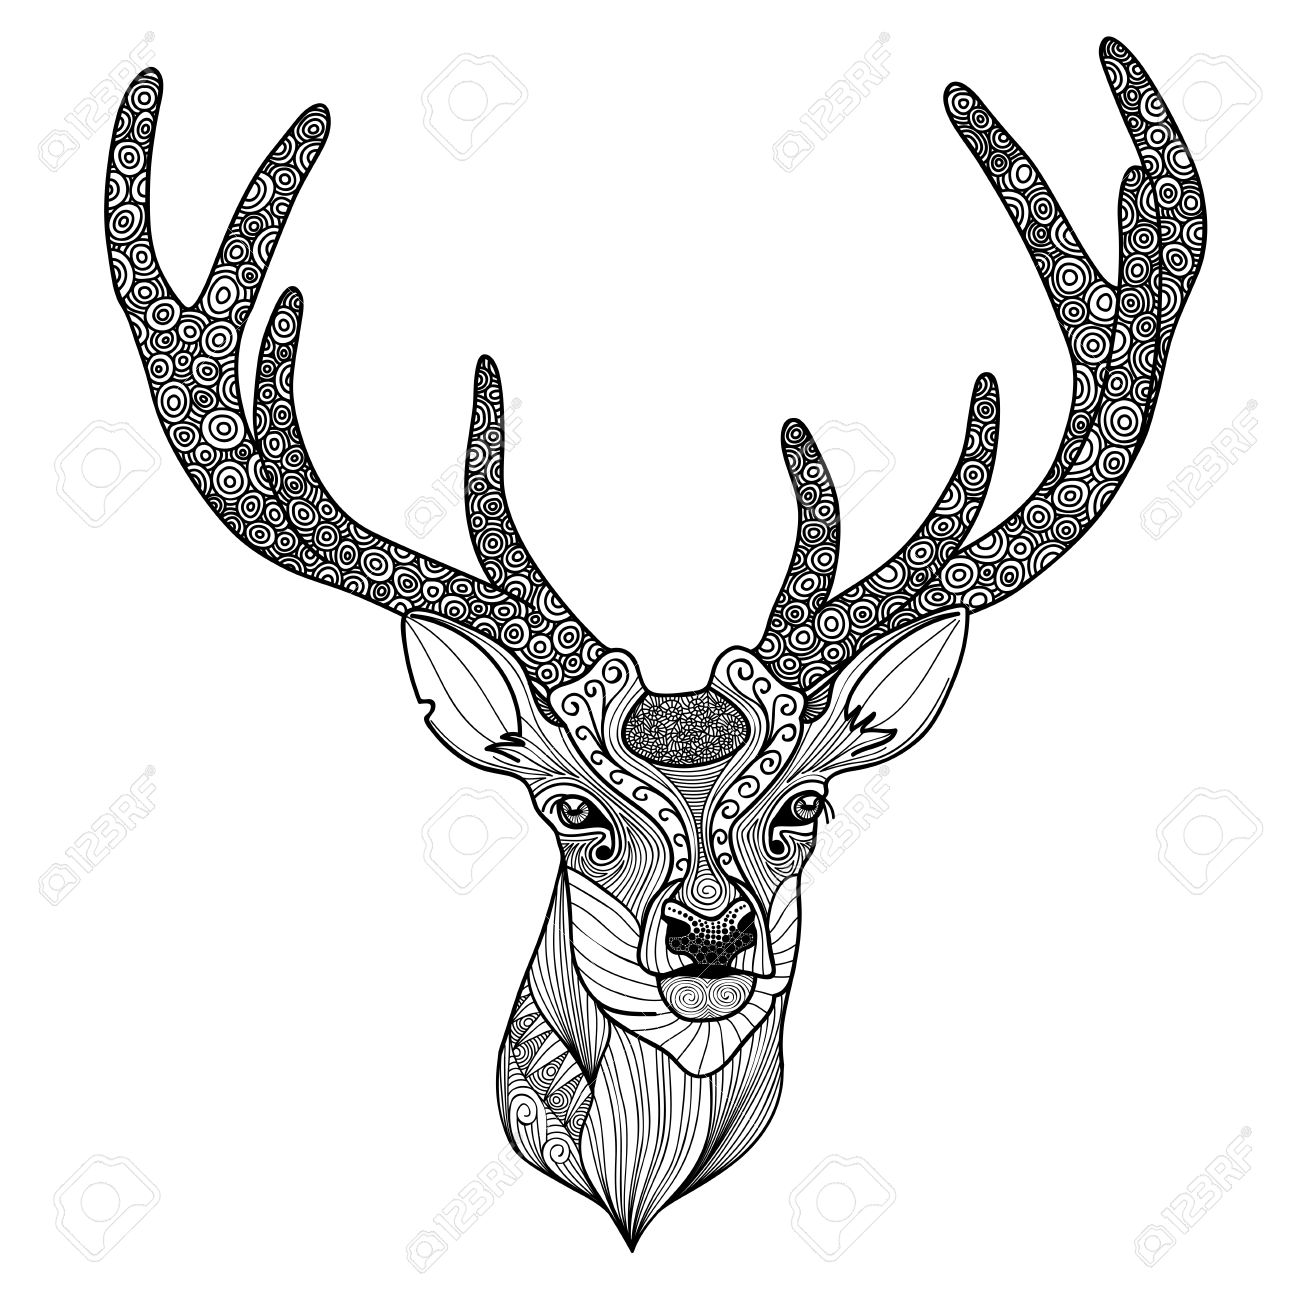 1300x1300 Patterned Deer Head With Big Antlers Royalty Free Cliparts